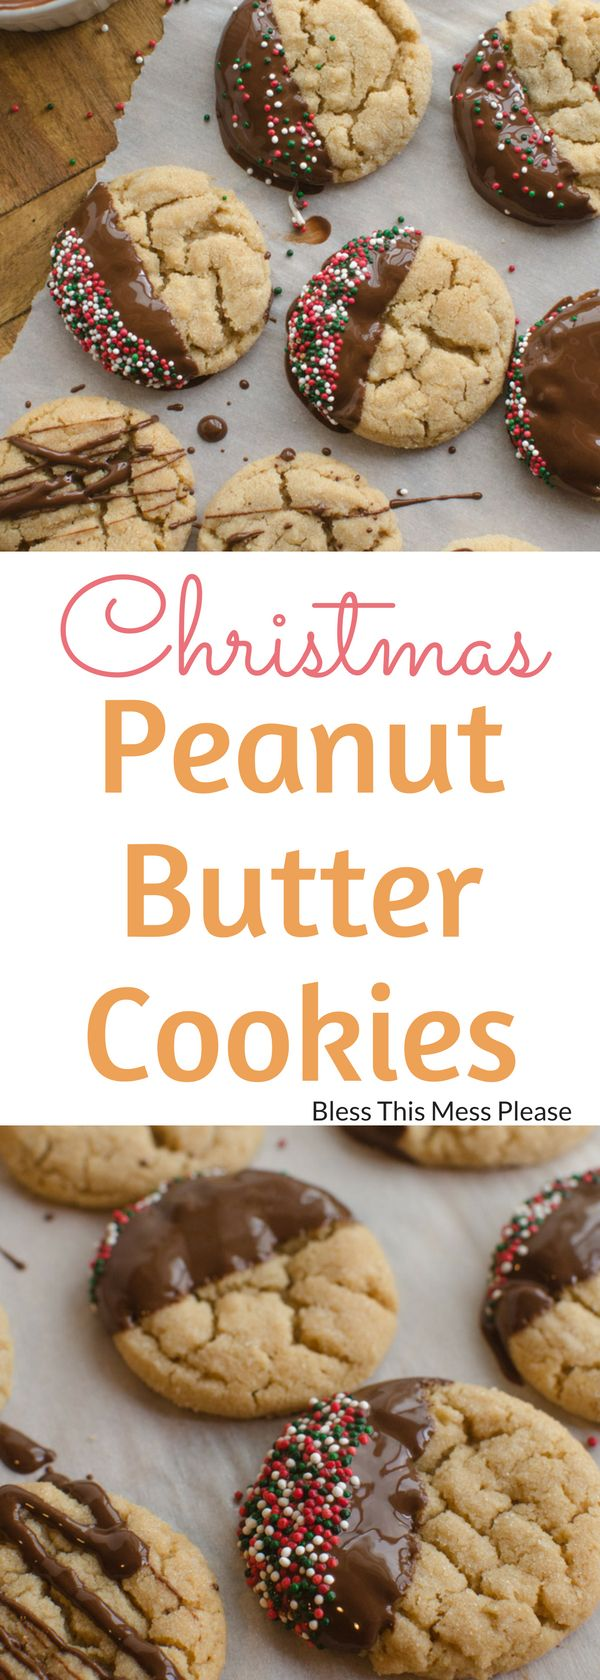 Christmas Peanut Butter Cookies ~ A dip in chocolate and some festive sprinkles turn year-round favorite peanut butter cookies into a delicious Christmas treat.